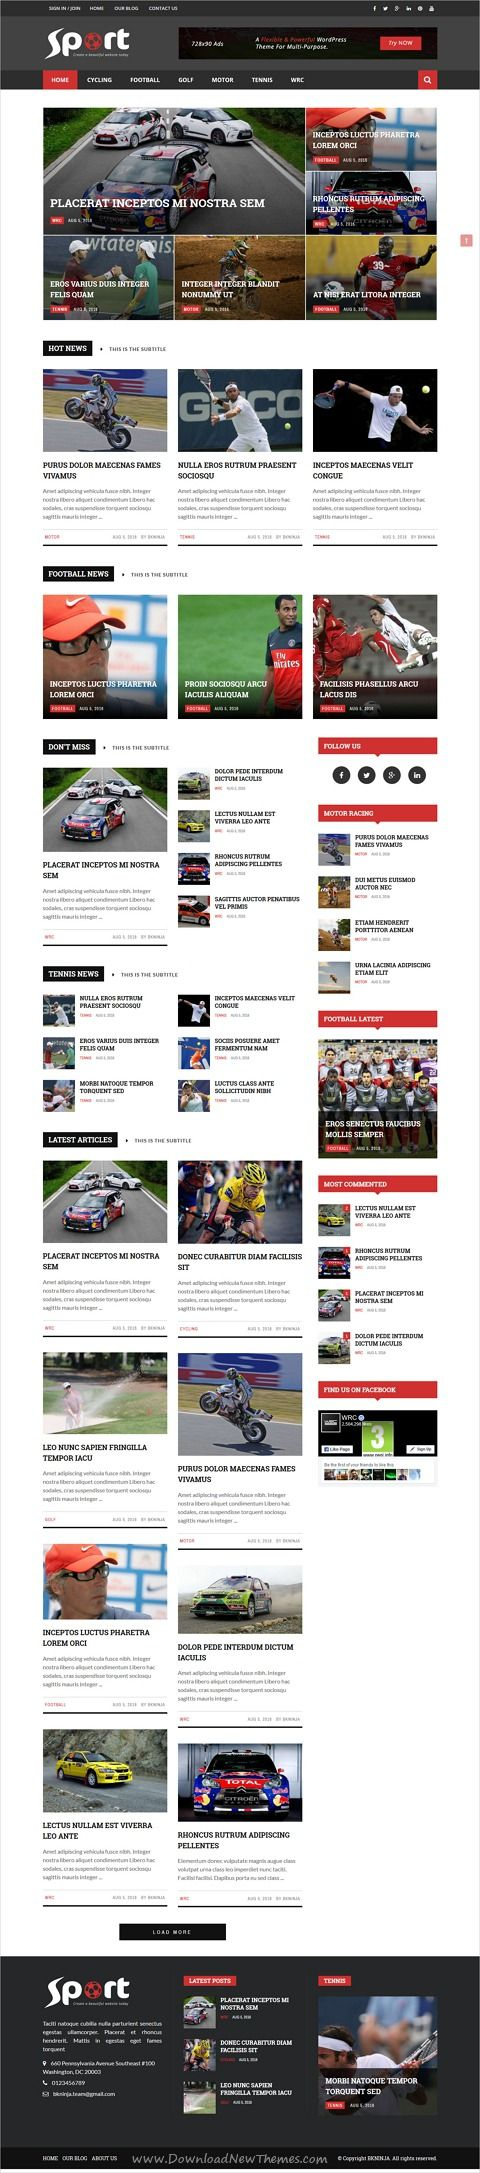 Magneto is clean and modern design responsive #WordPress theme for stunning #sports #News, #blog and #magazine website with 120+ creative homepage layouts download now..